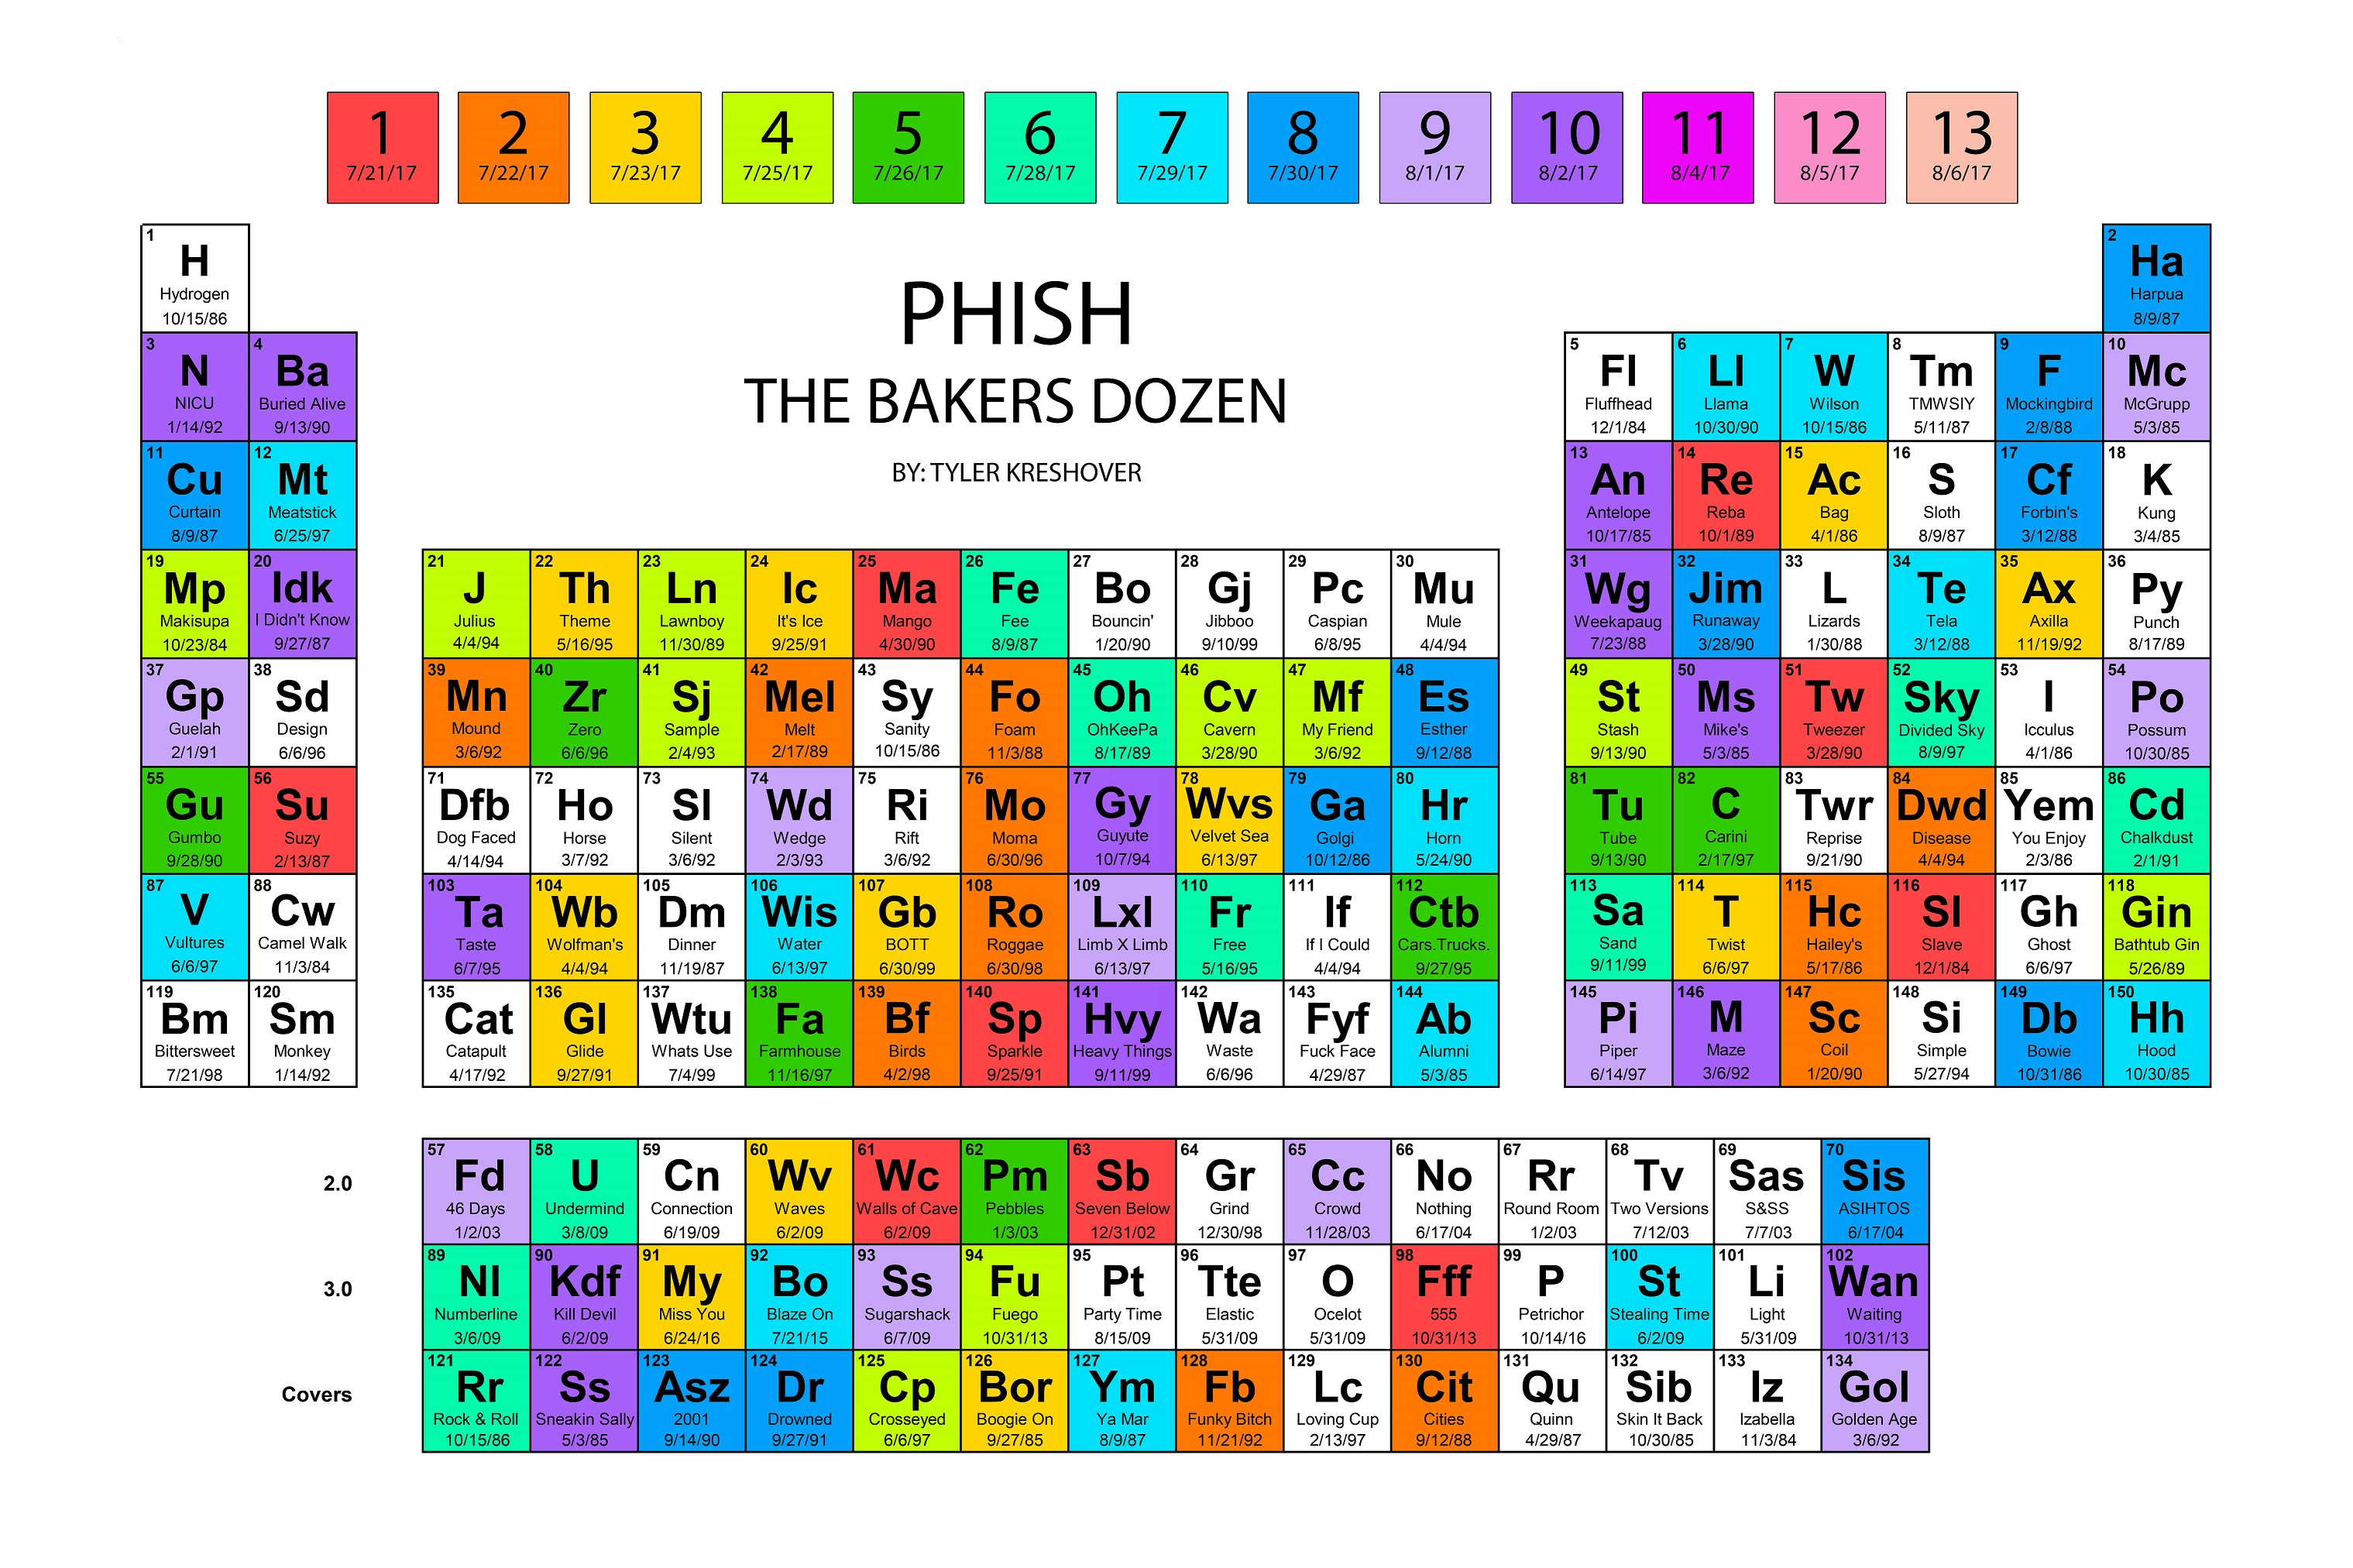 Icymi phishy bakers dozen periodic table phish photo tyler kreshover urtaz Image collections